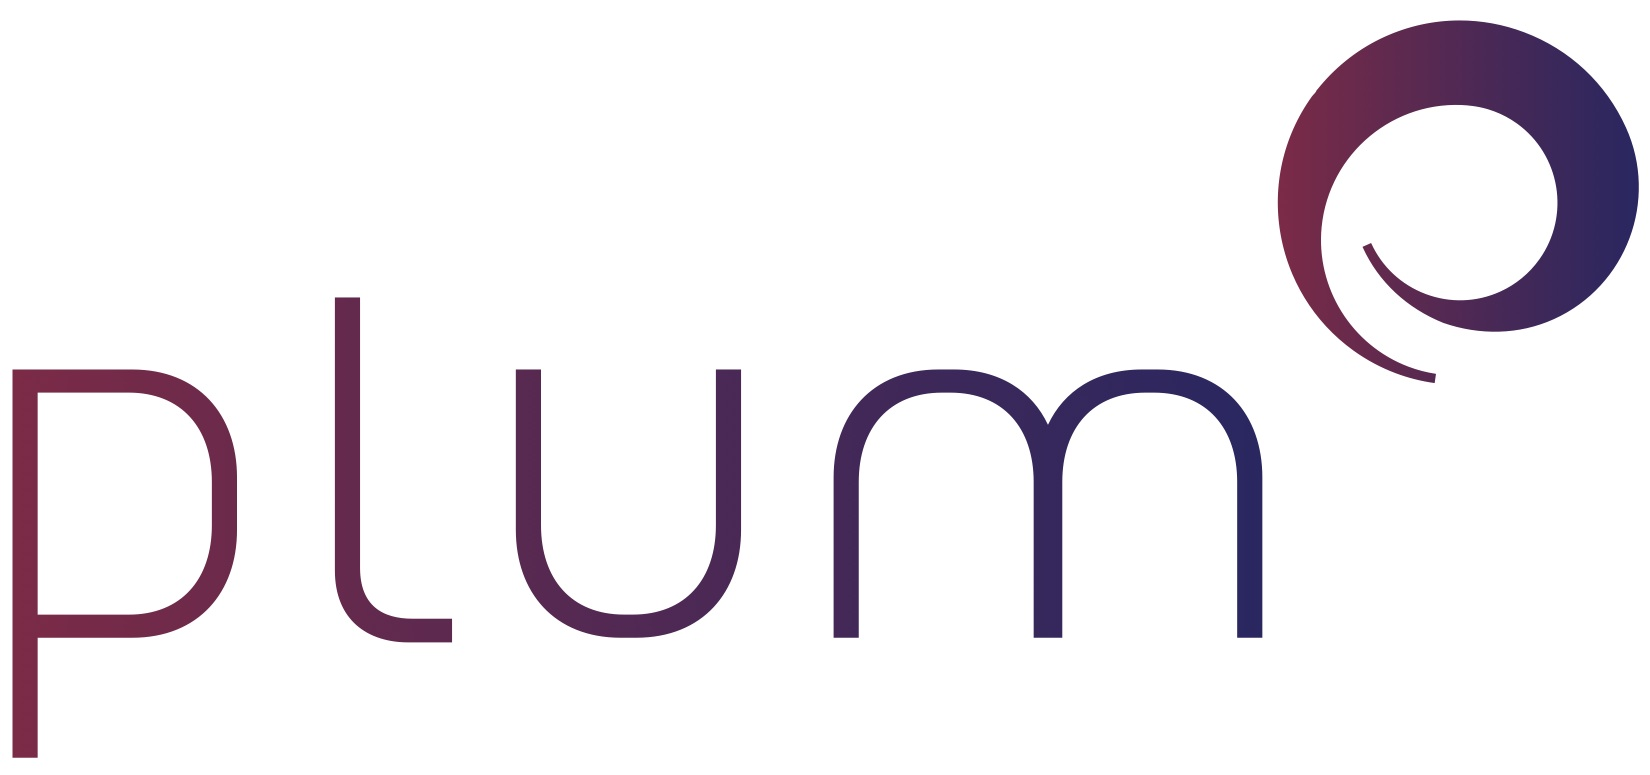 Plum is a Leading Manufacturer of Smart Light Dimmers, Plugs and Outlets